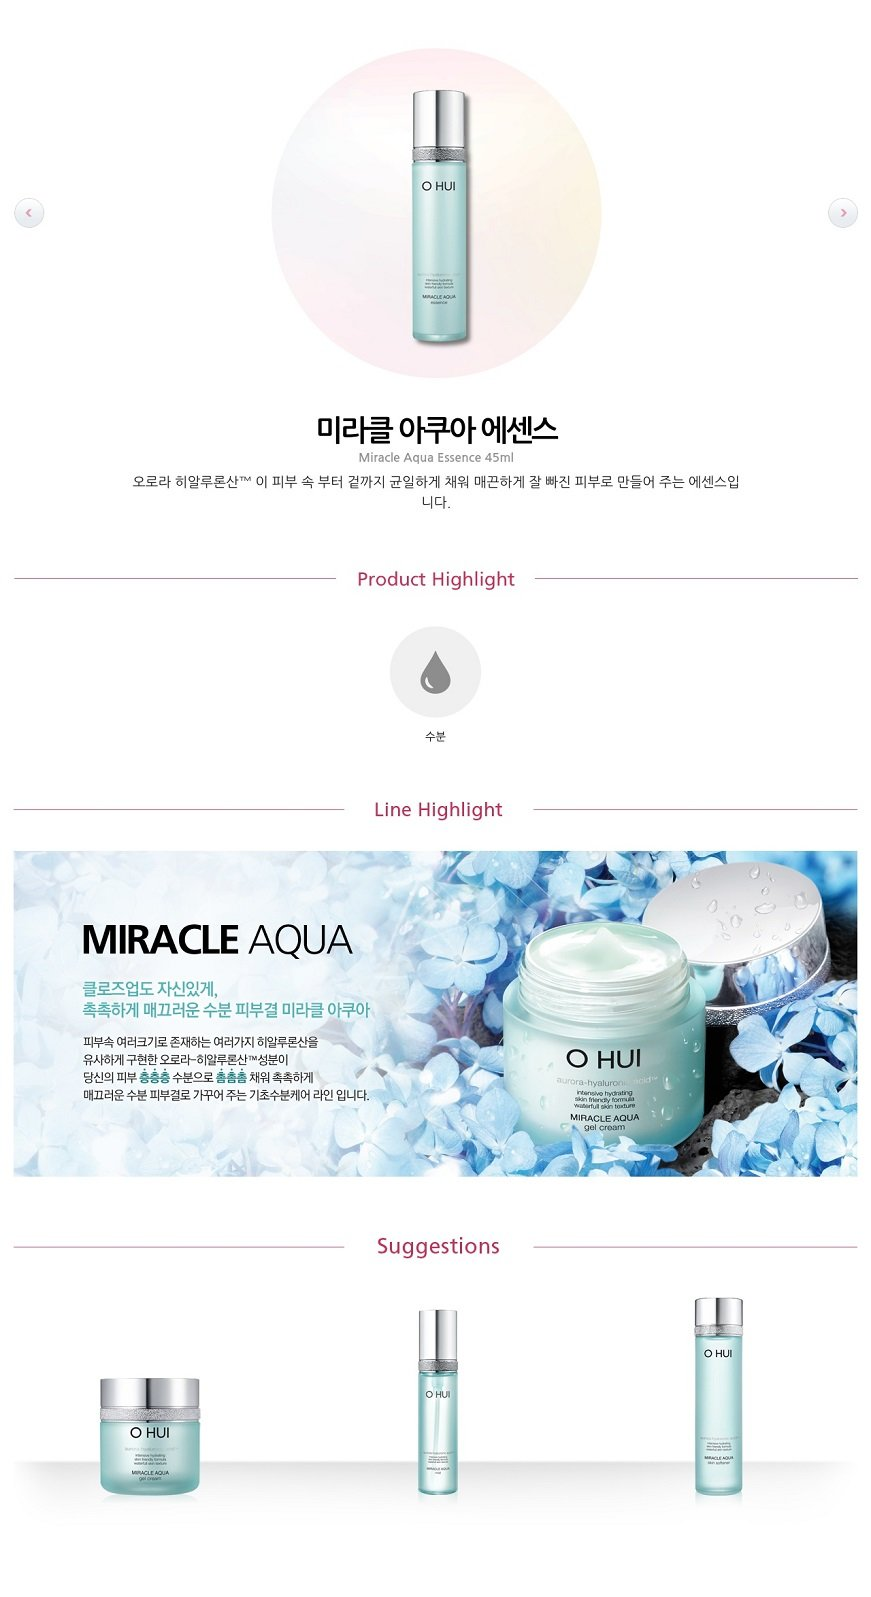 OHUI Miracle Aqua Essence 45ml malaysia singapore indonesia